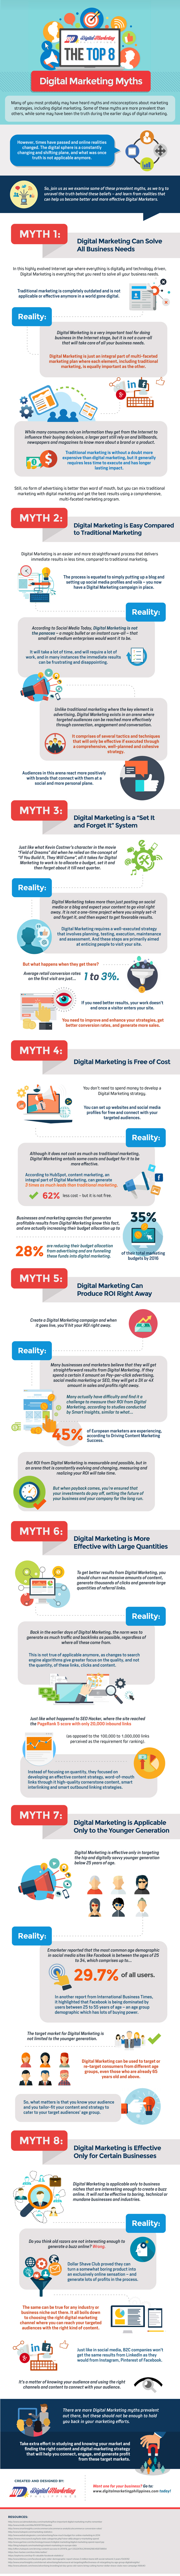 The-Top-8-Digital-Marketing-Myths